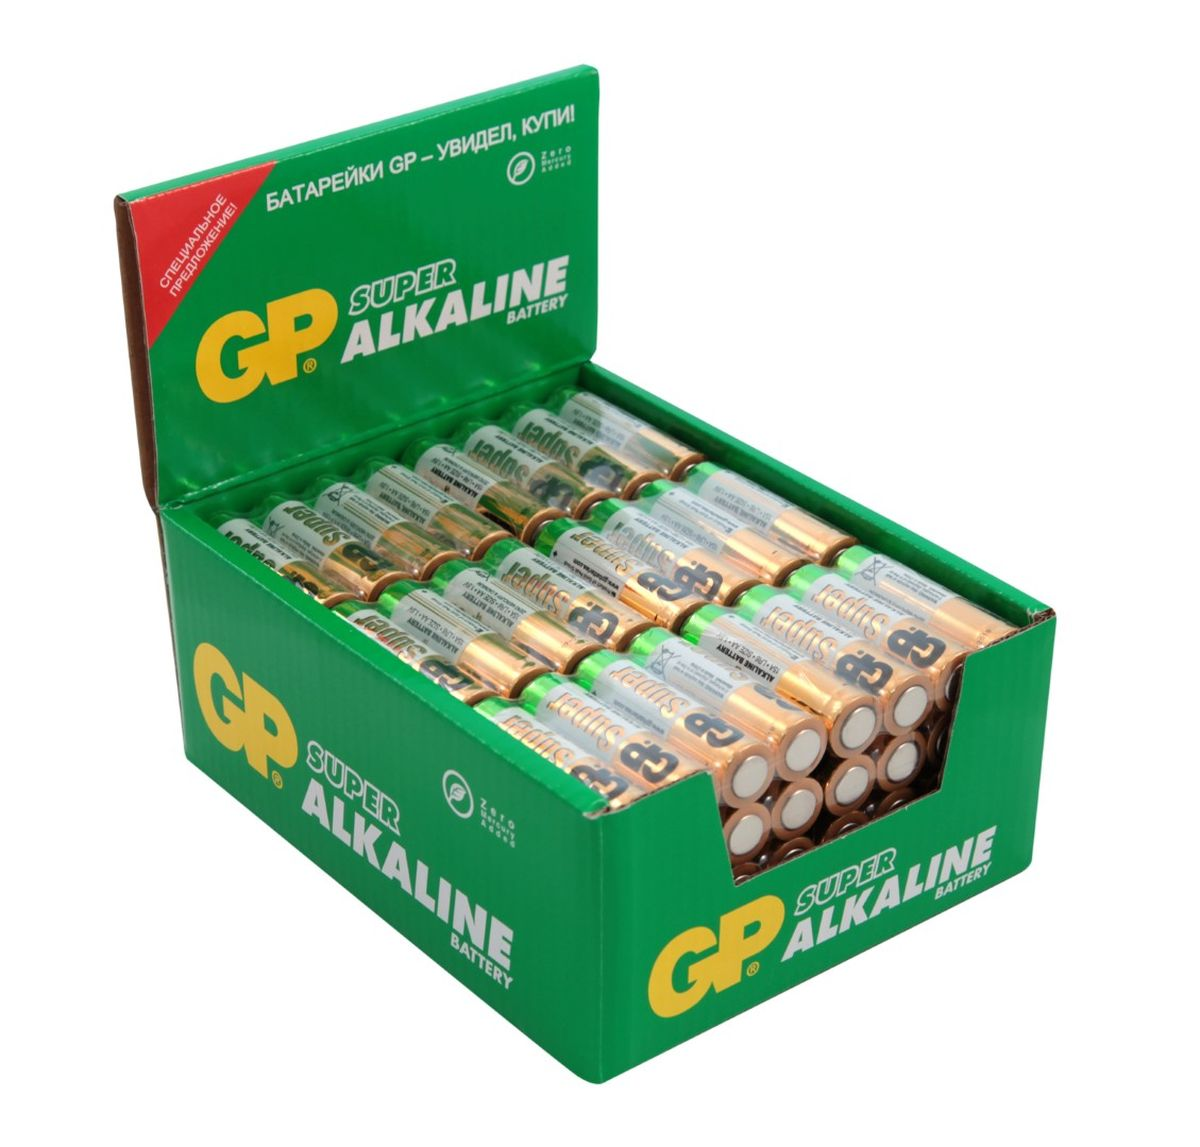 Батарейка алкалиновая GP Batteries Super Alkaline, тип АА, 96 шт ag1 lr621 1 55v alkaline cell button batteries 10 piece pack